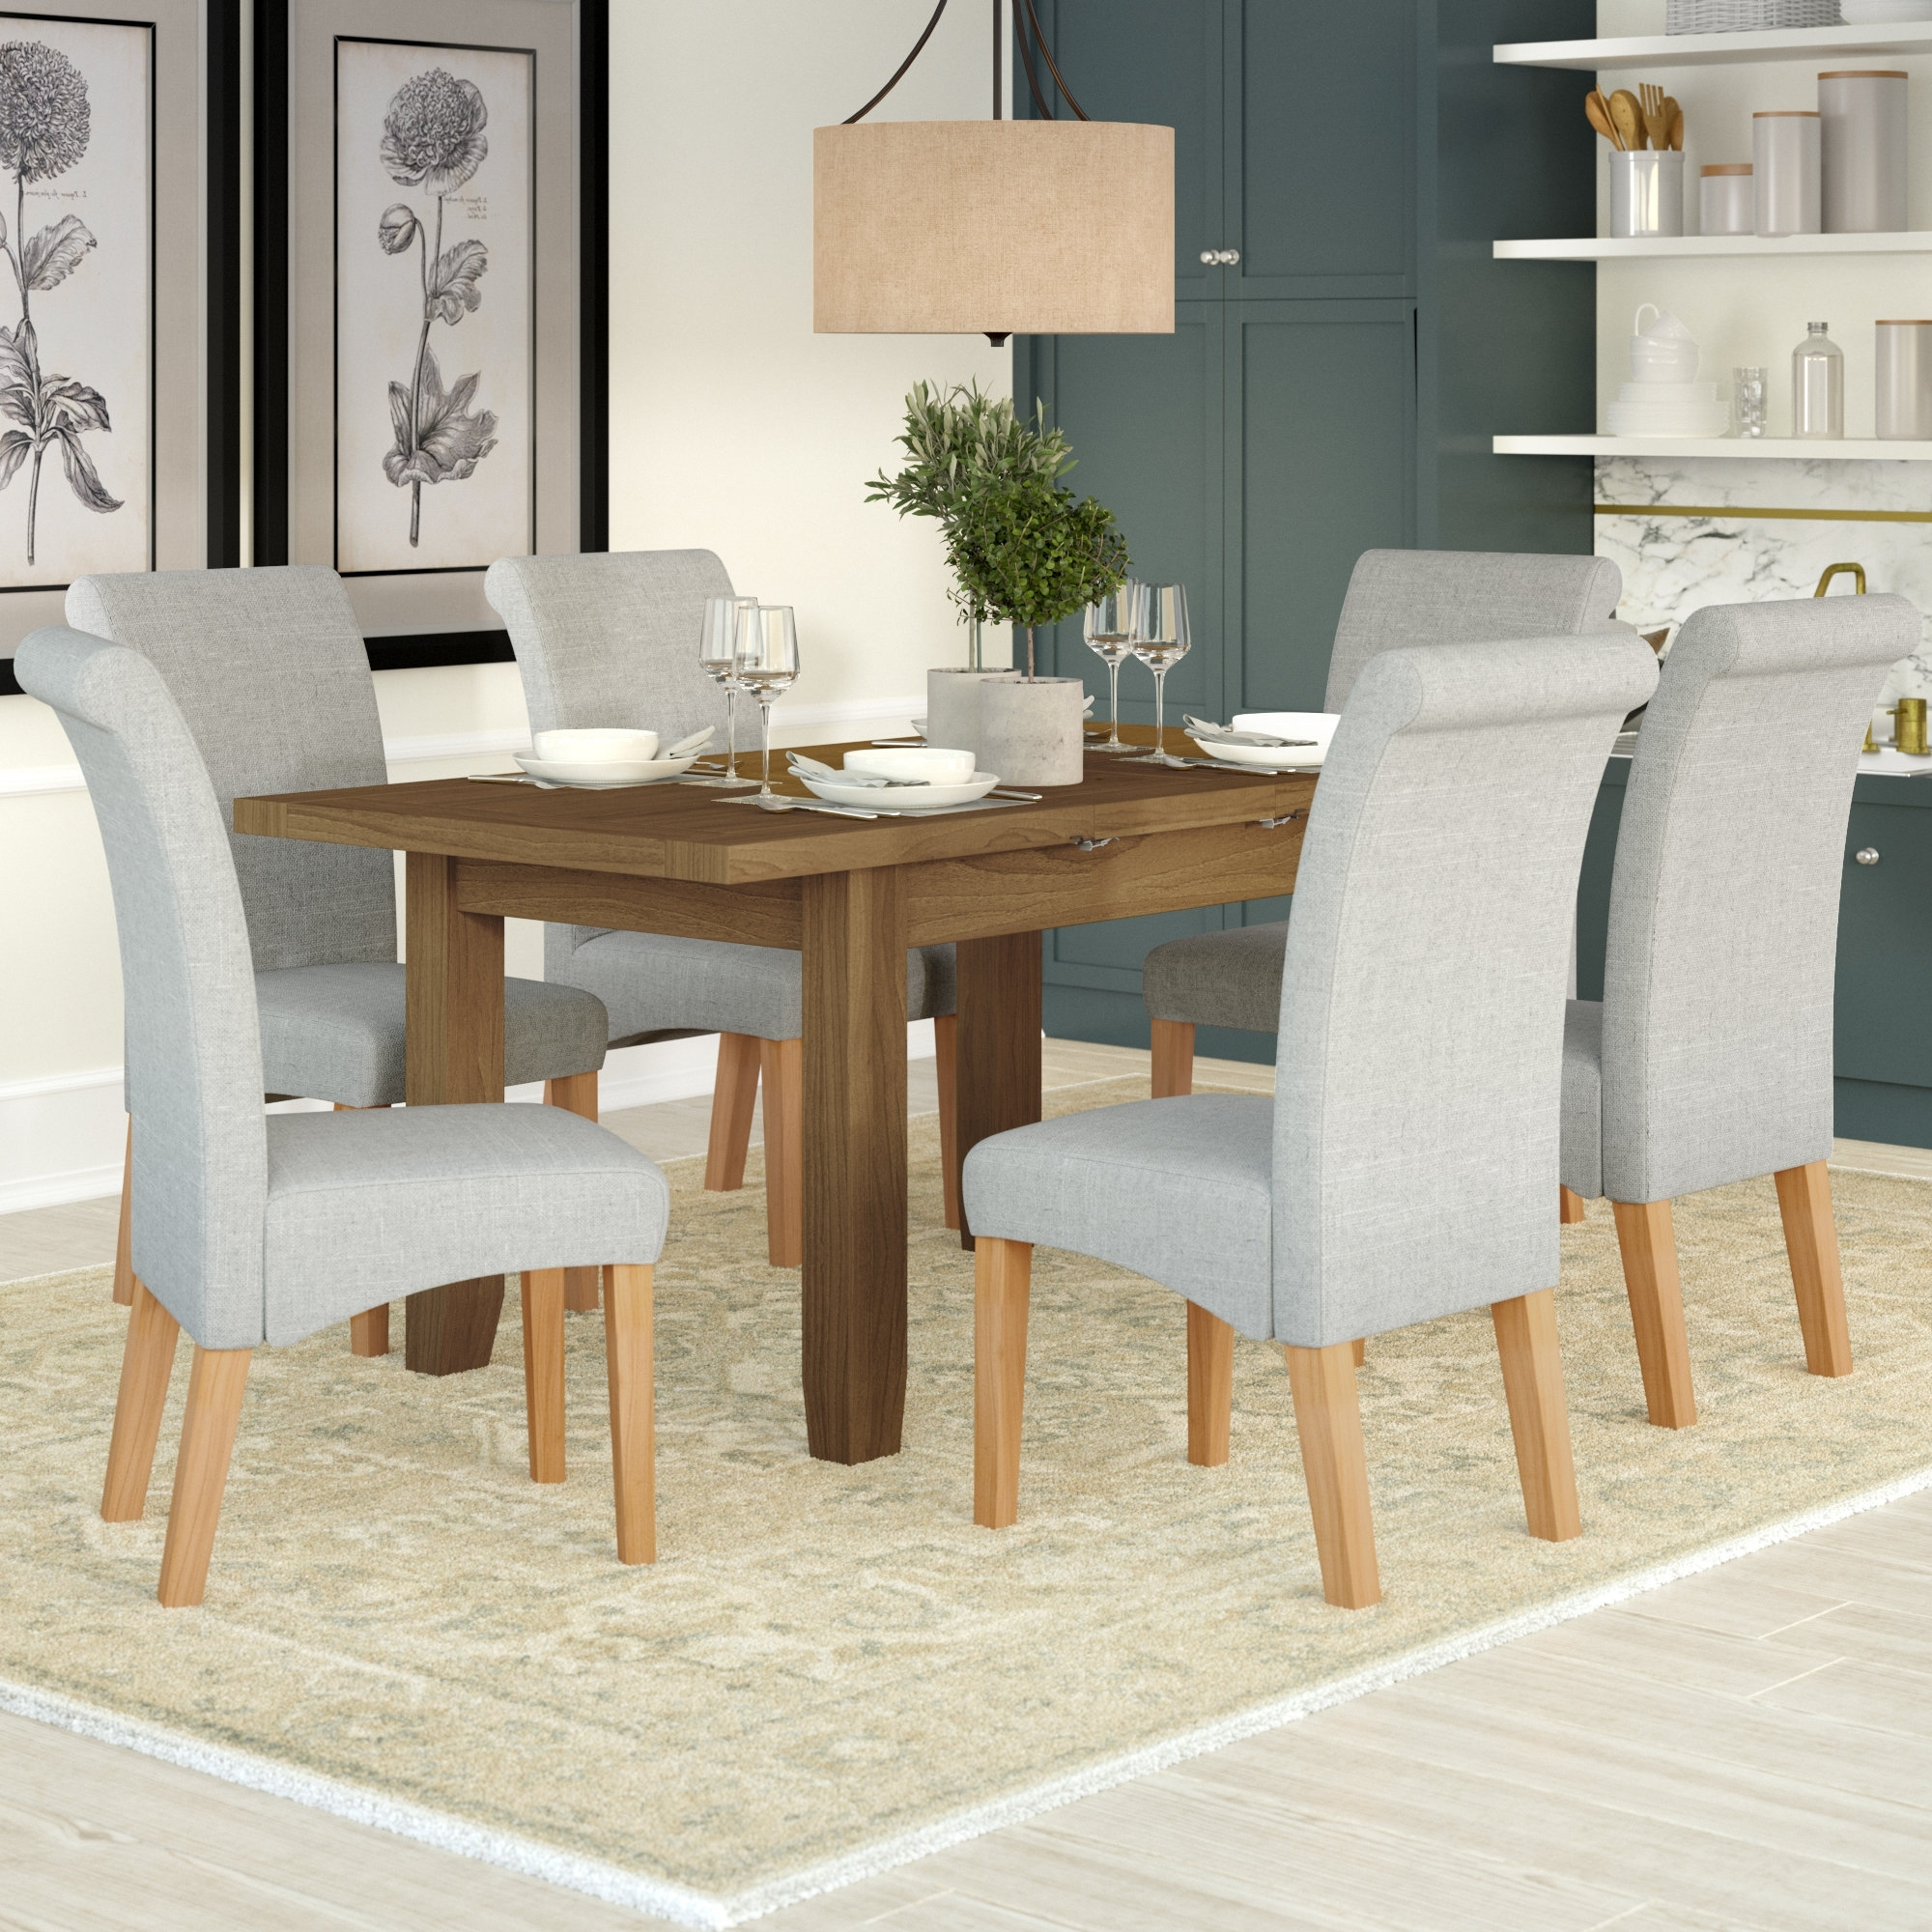 6 Chairs And Dining Tables In Well Known Three Posts Berwick Extendable Dining Table And 6 Chairs & Reviews (View 5 of 25)